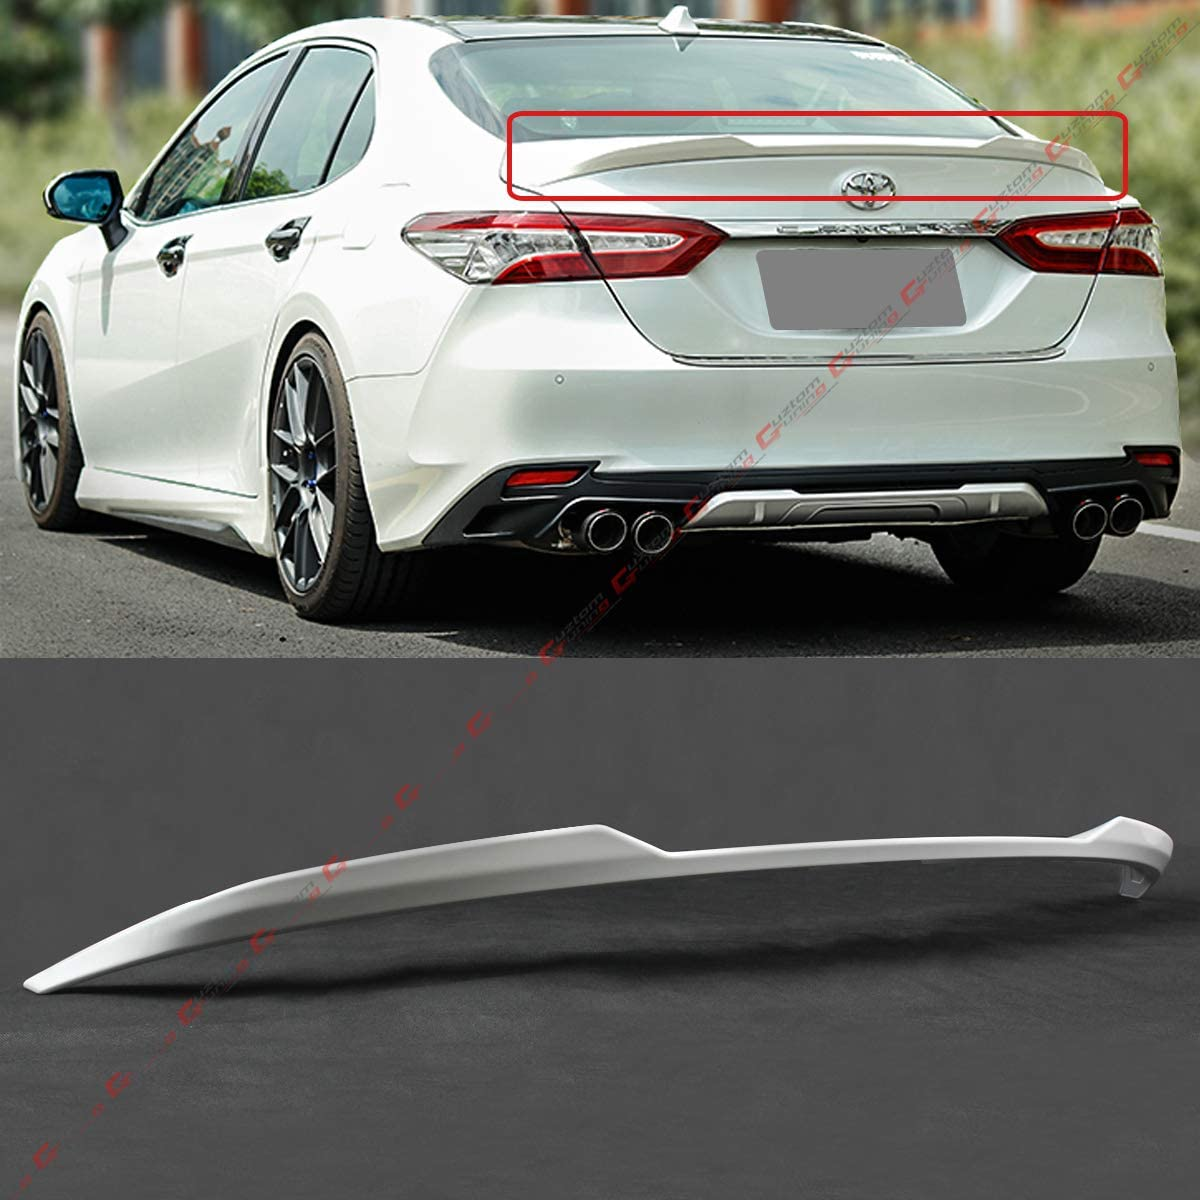 Amazon.com: Cuztom Tuning Fits for 2018-2020 Toyota Camry LE XLE Hybrid V  Style Rear Trunk Lid Spoiler Wing- Painted Gloss White Finish: AutomotiveAmazon.com